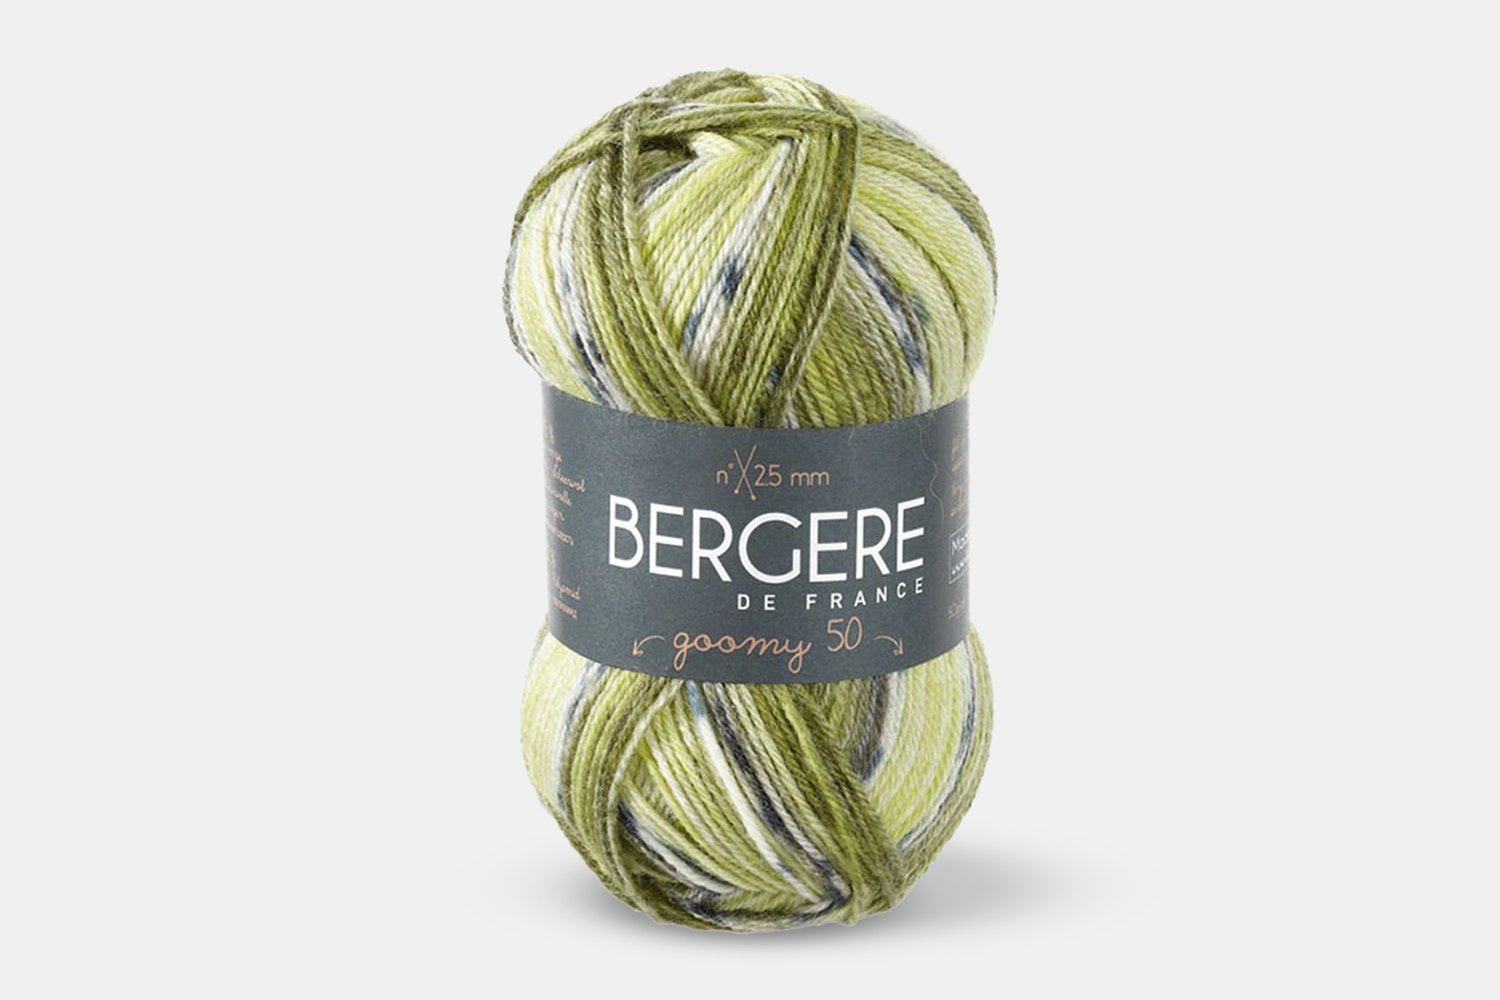 Goomy 50 Yarn by Bergere De France (2-Pack)